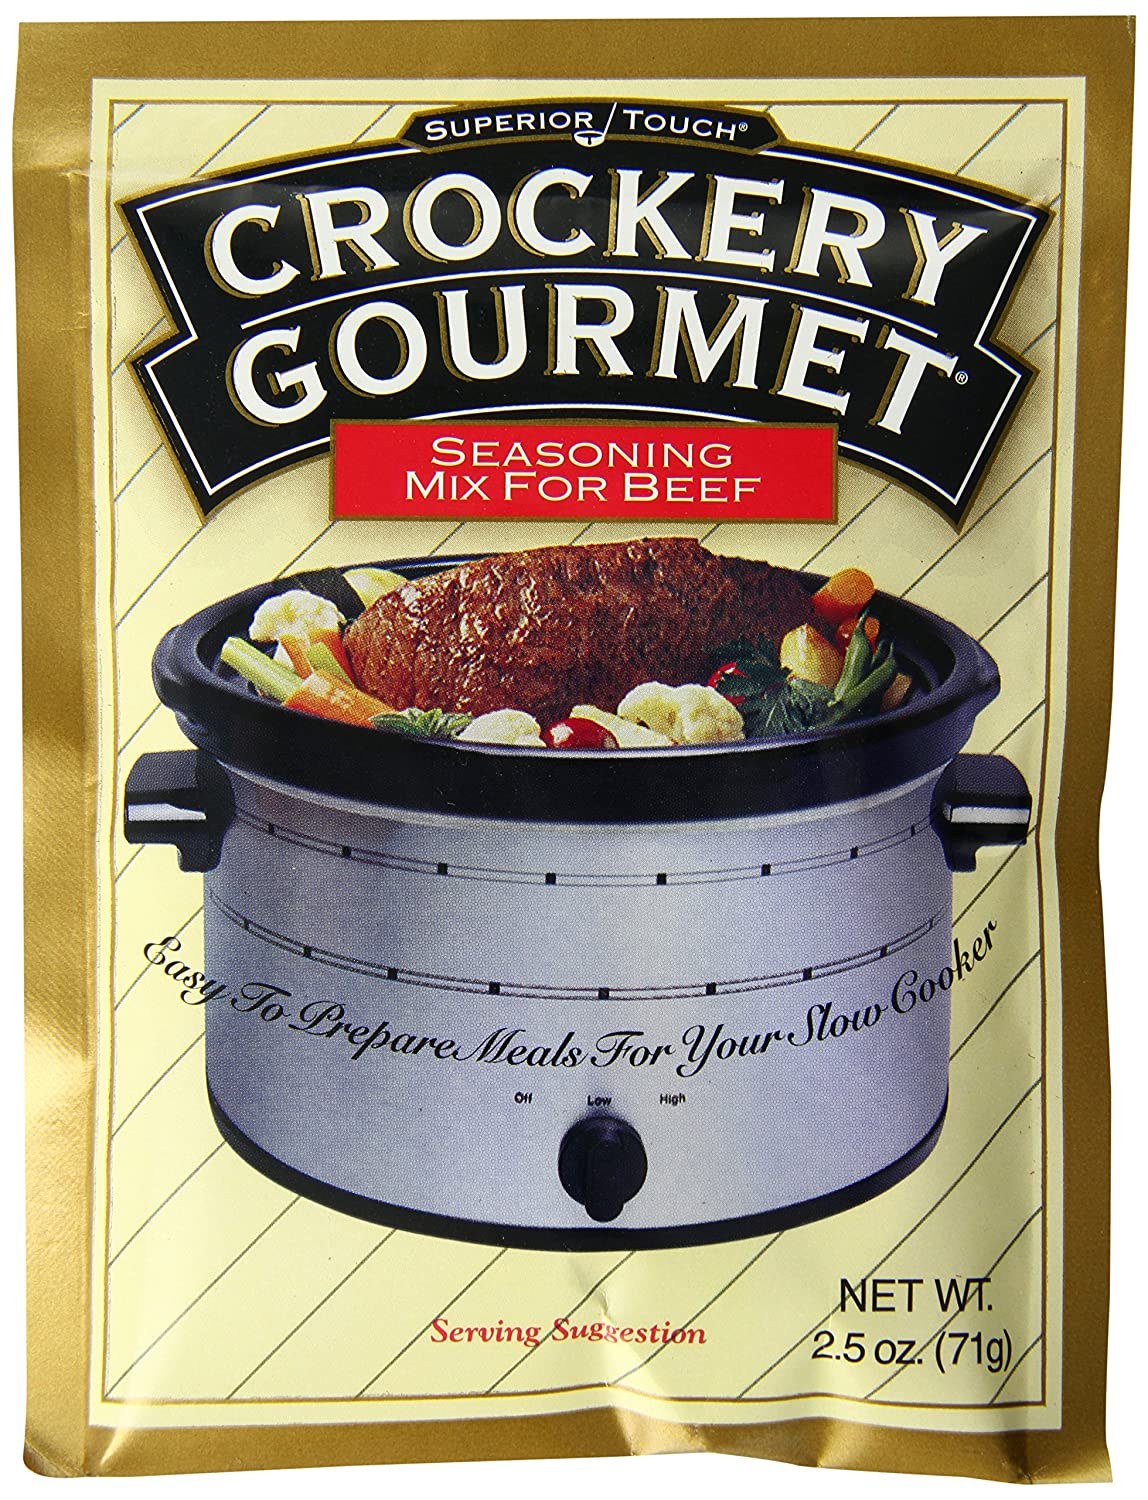 Instant Gourmet Seasoning Crockery Gourmet Seasoning Mix